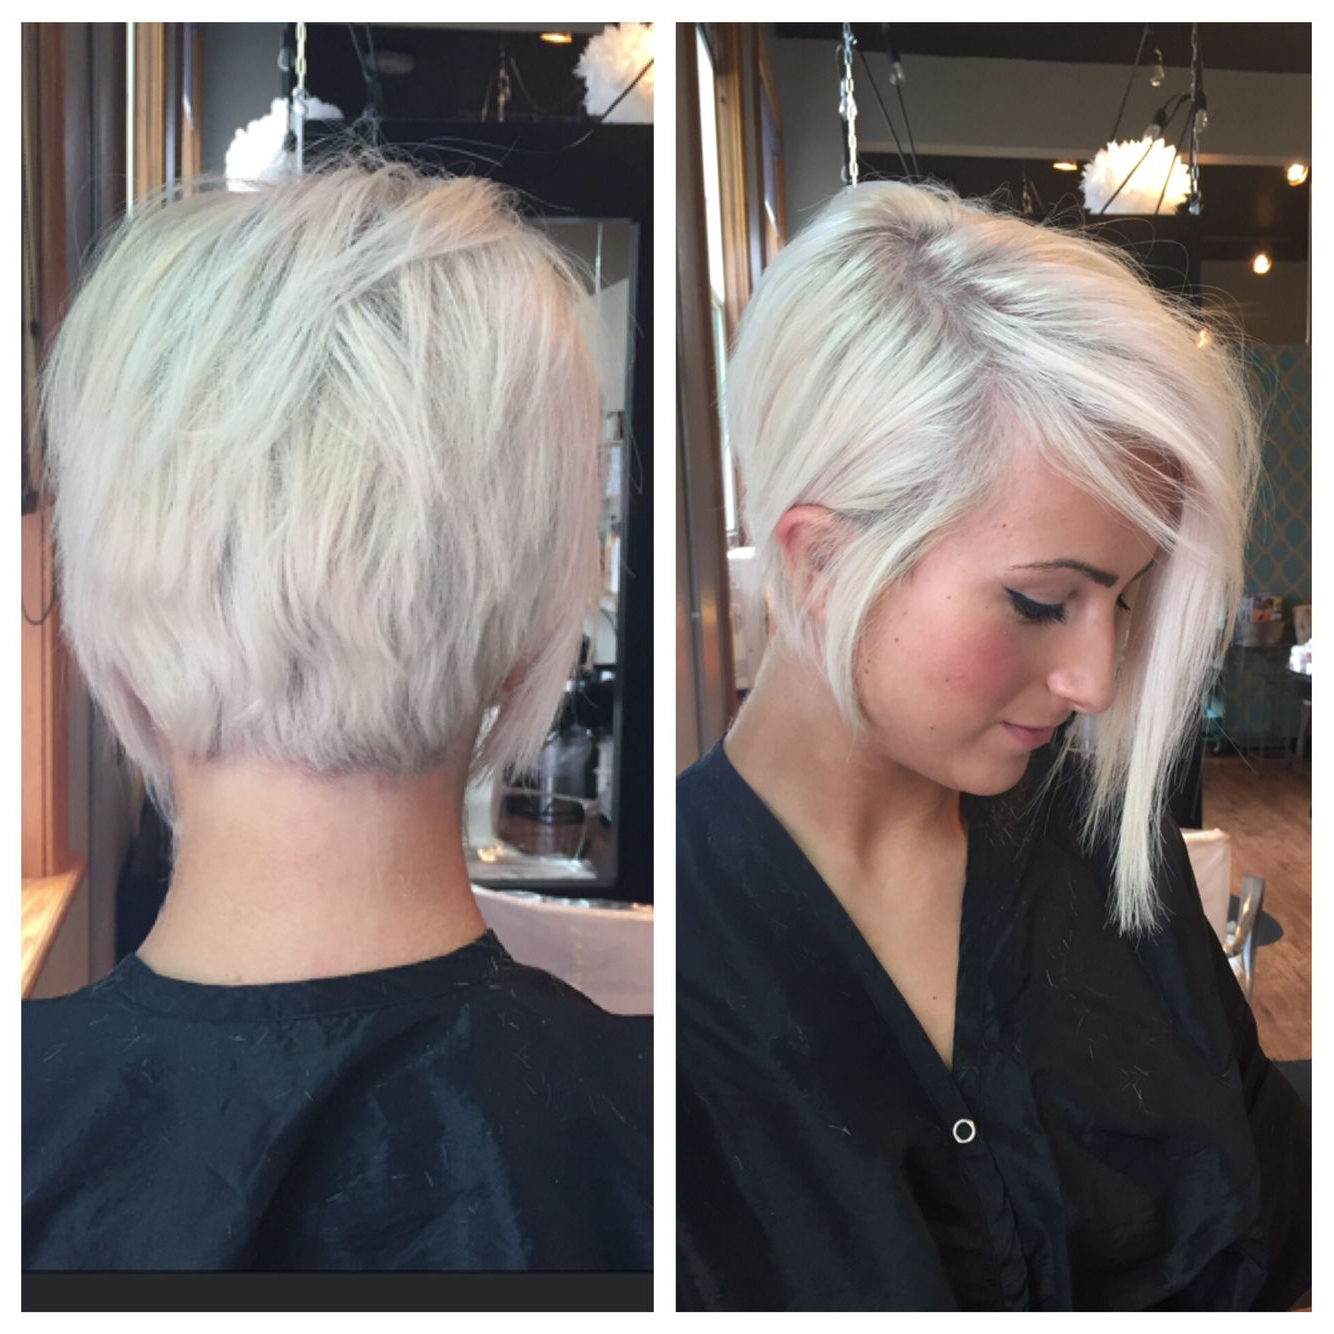 Went Even Shorter! Long A Symmetrical Pixie Cut | Hair With With Asymmetrical Shaggy Pixie Hairstyles (View 7 of 20)